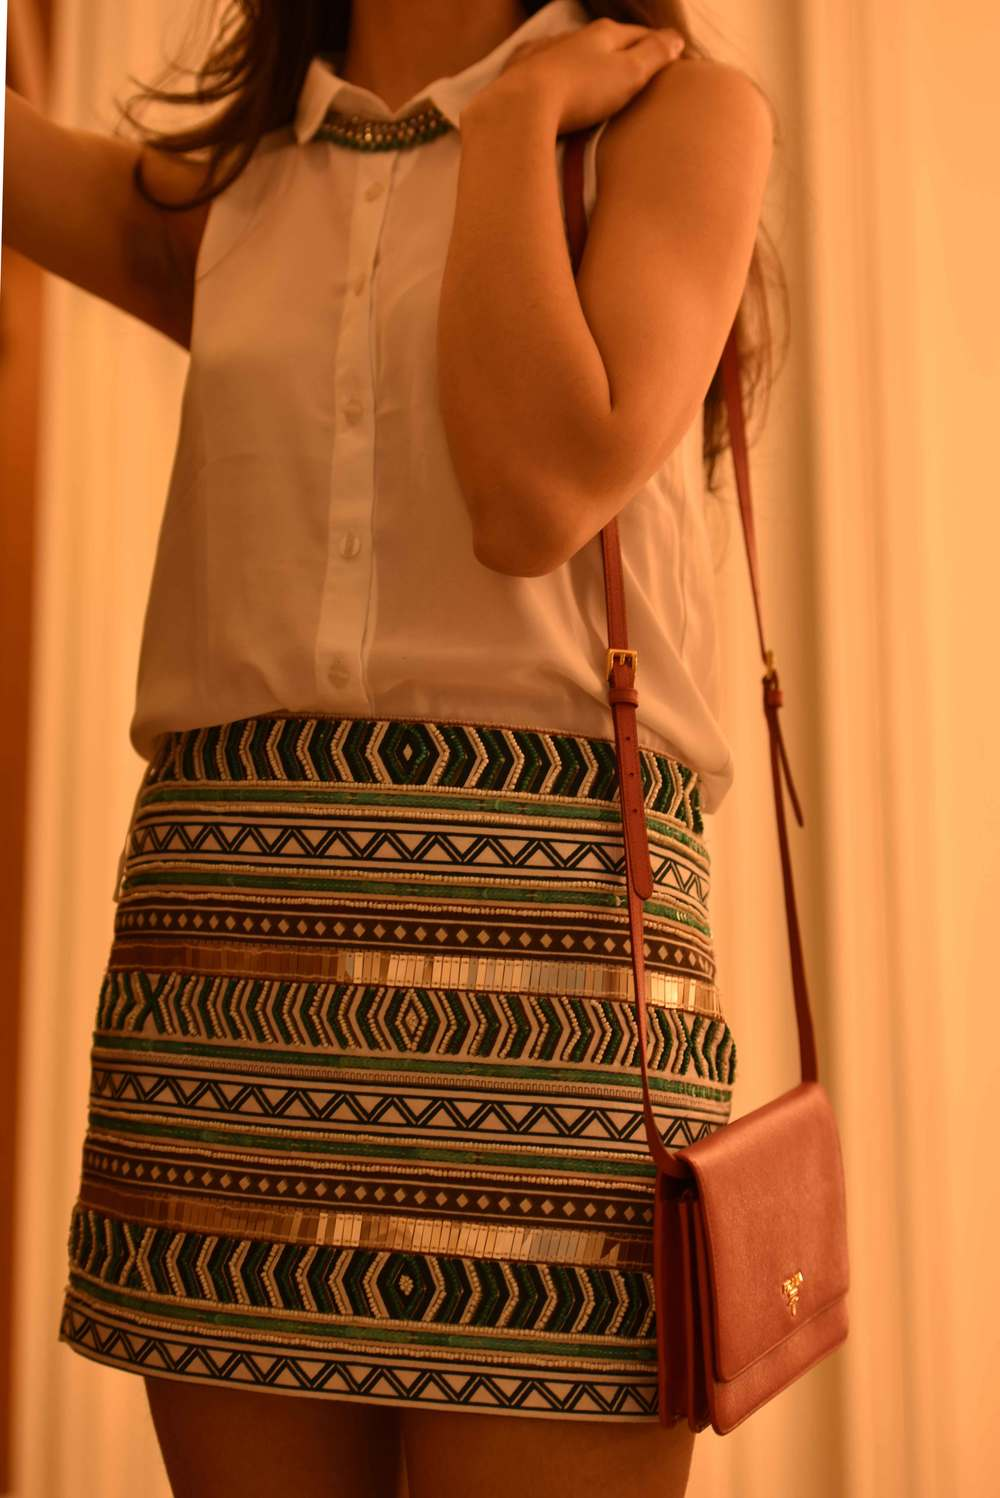 Zara mini-skirt with Prada bag. Image©gunjanvirk, Model: Mannat Dhaliwal